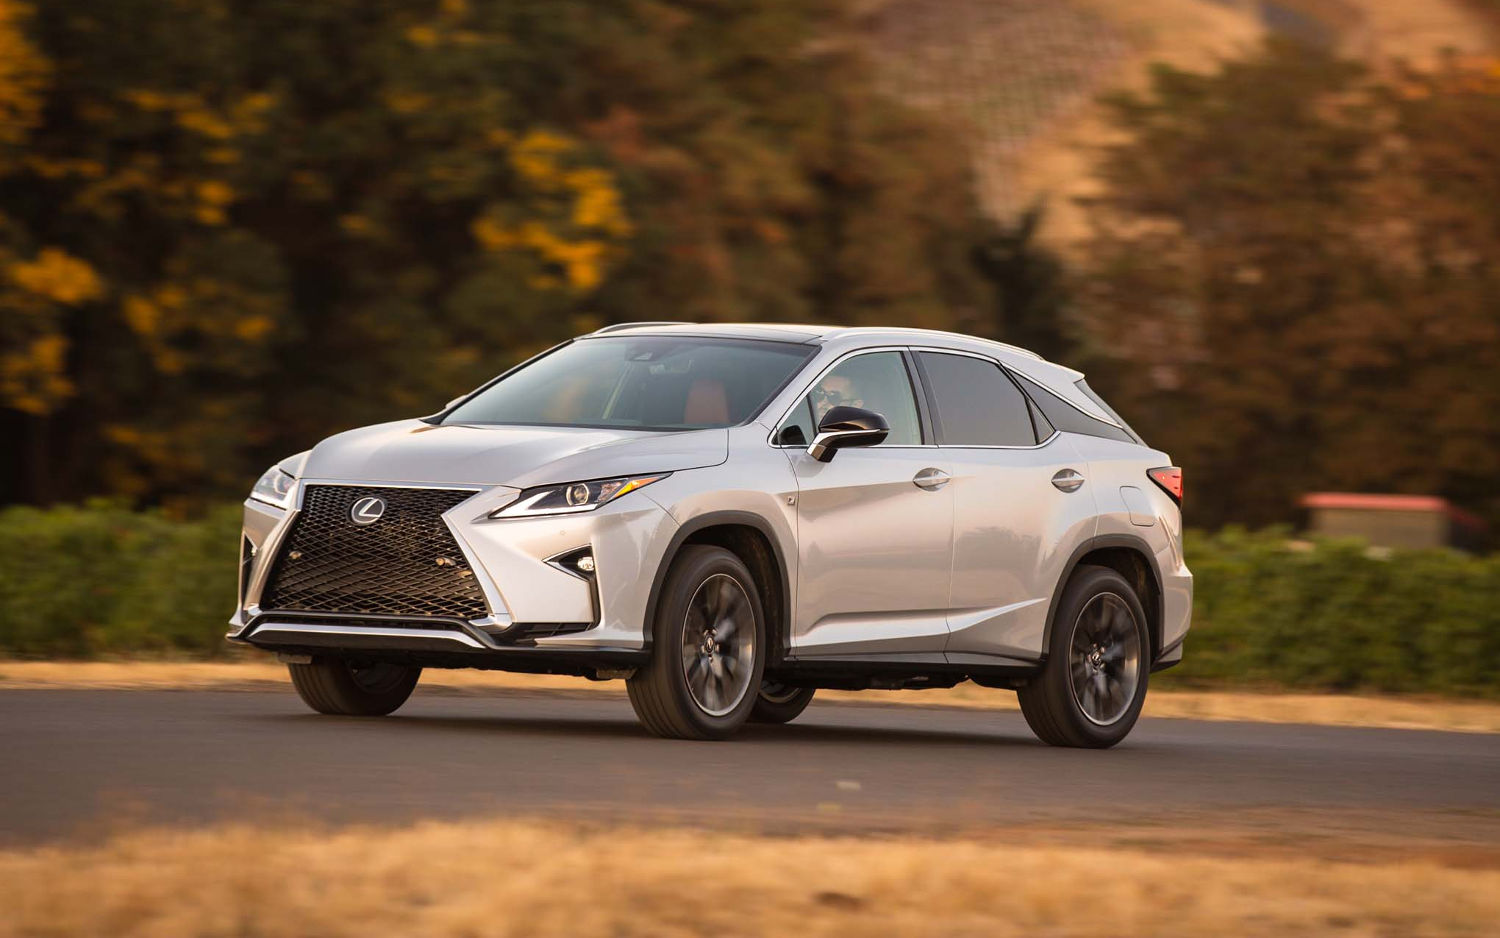 Rdx Vs Rx350 >> Comparison - Lexus RX 350 F sport 2017 - vs - Honda CR-V ...